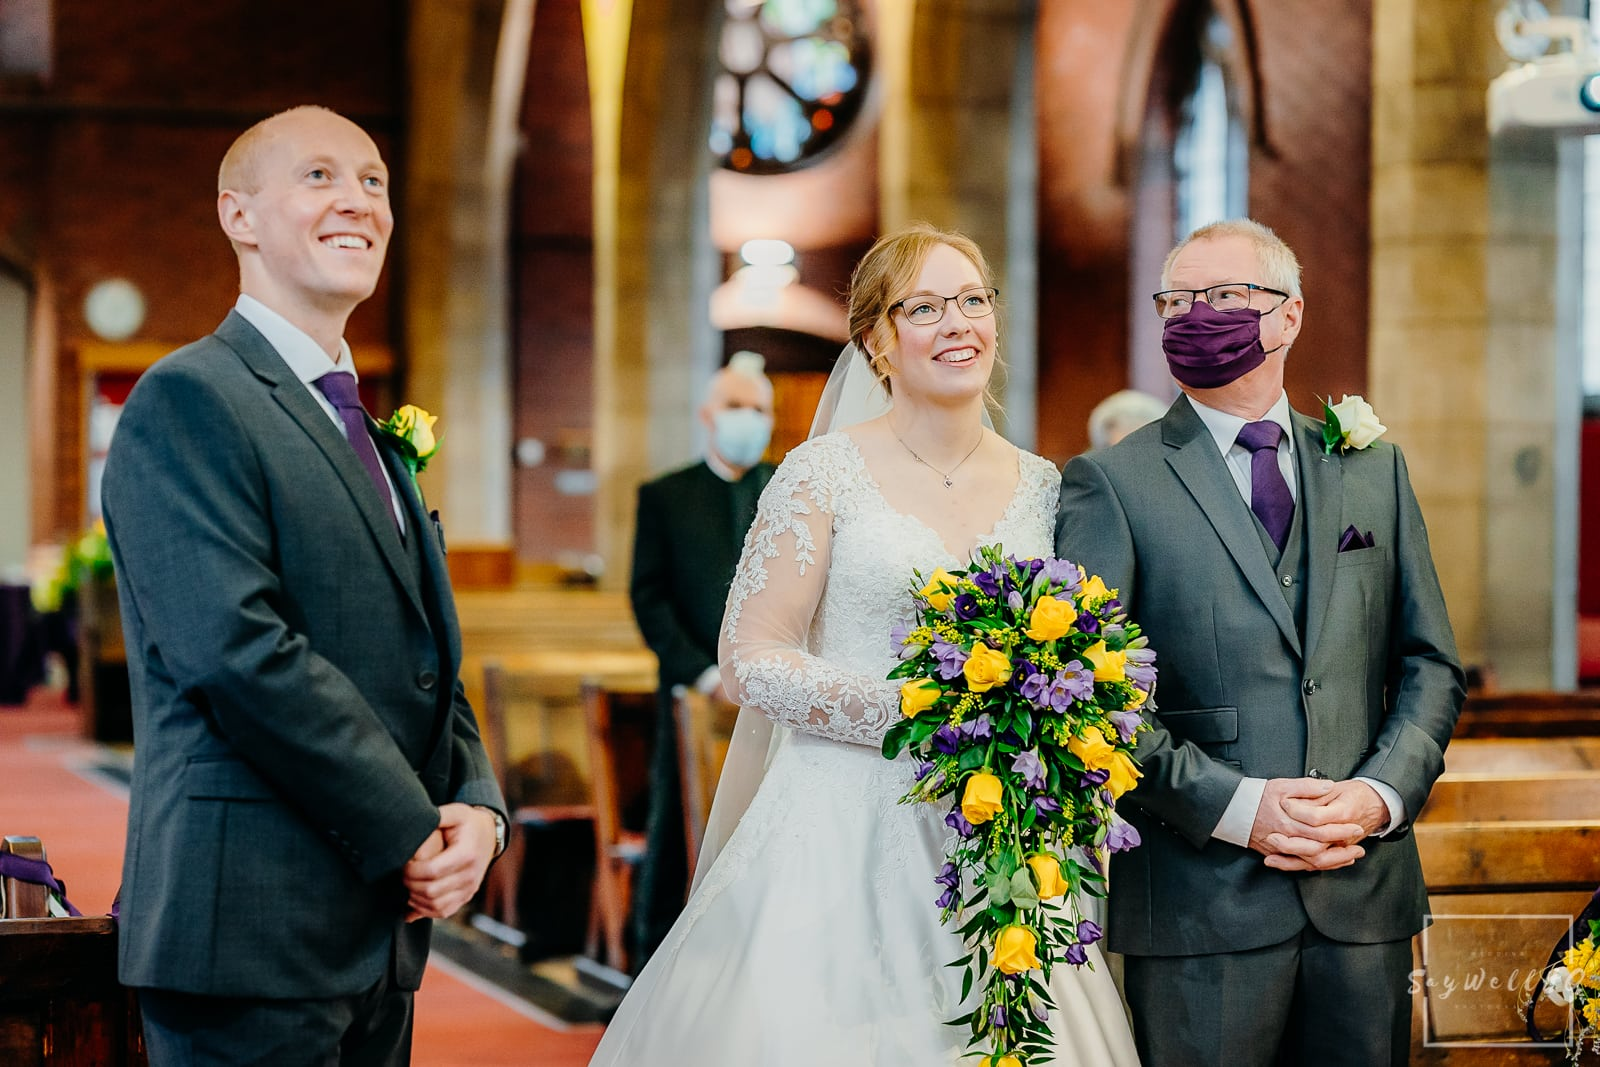 St Judes Church Mapperley Wedding Photography - Bride and Groom watching a slideshow of their photos before the wedding ceremony